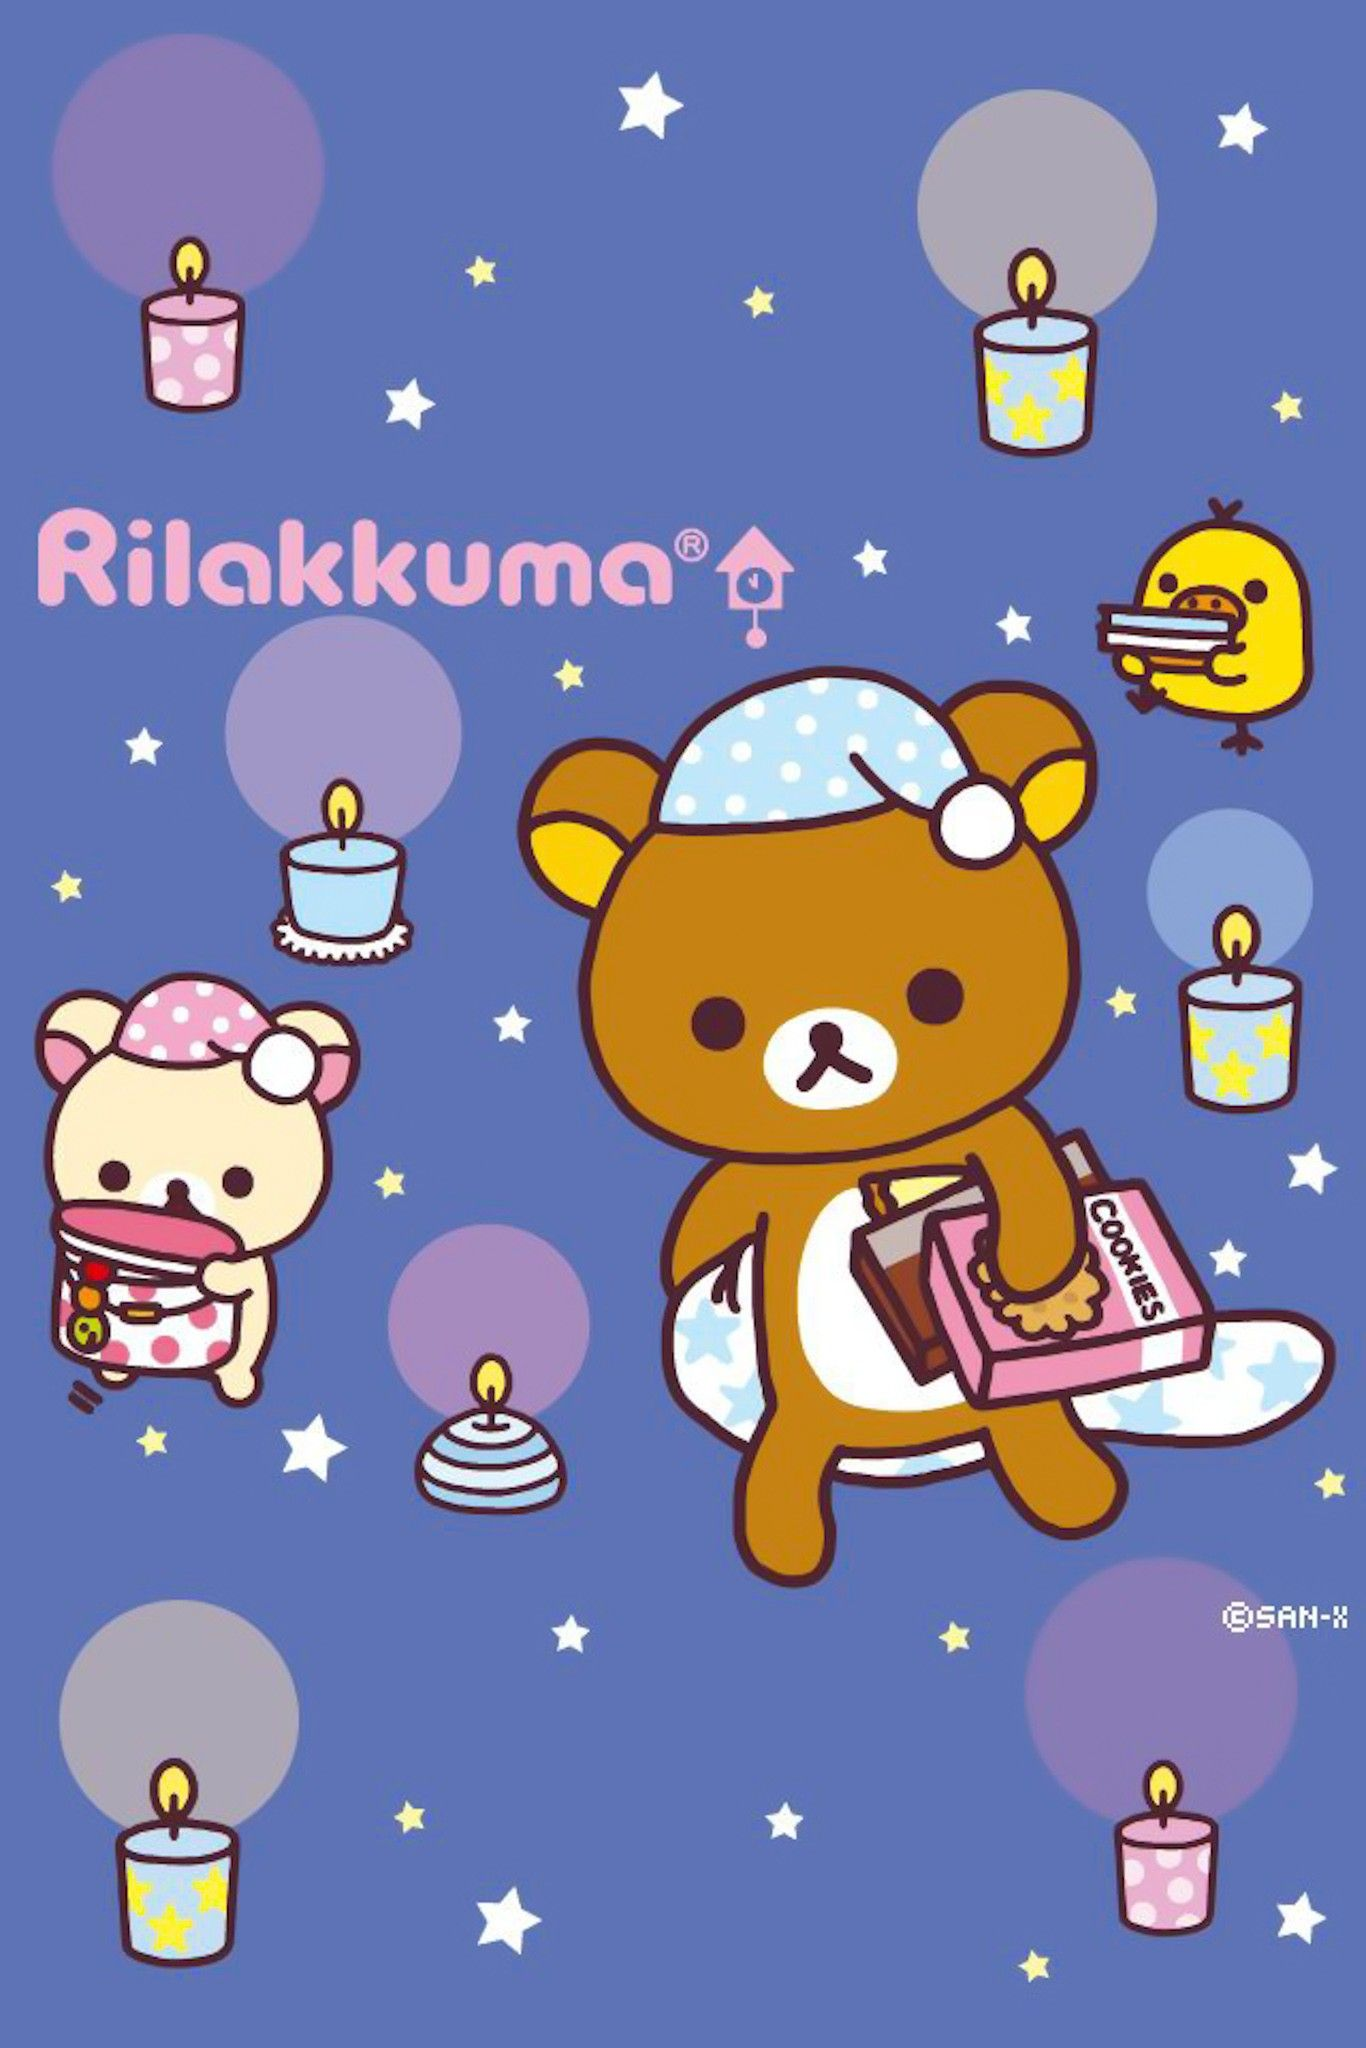 Pin by C H E R R Y on Sanrio Characters & Friends (With ...